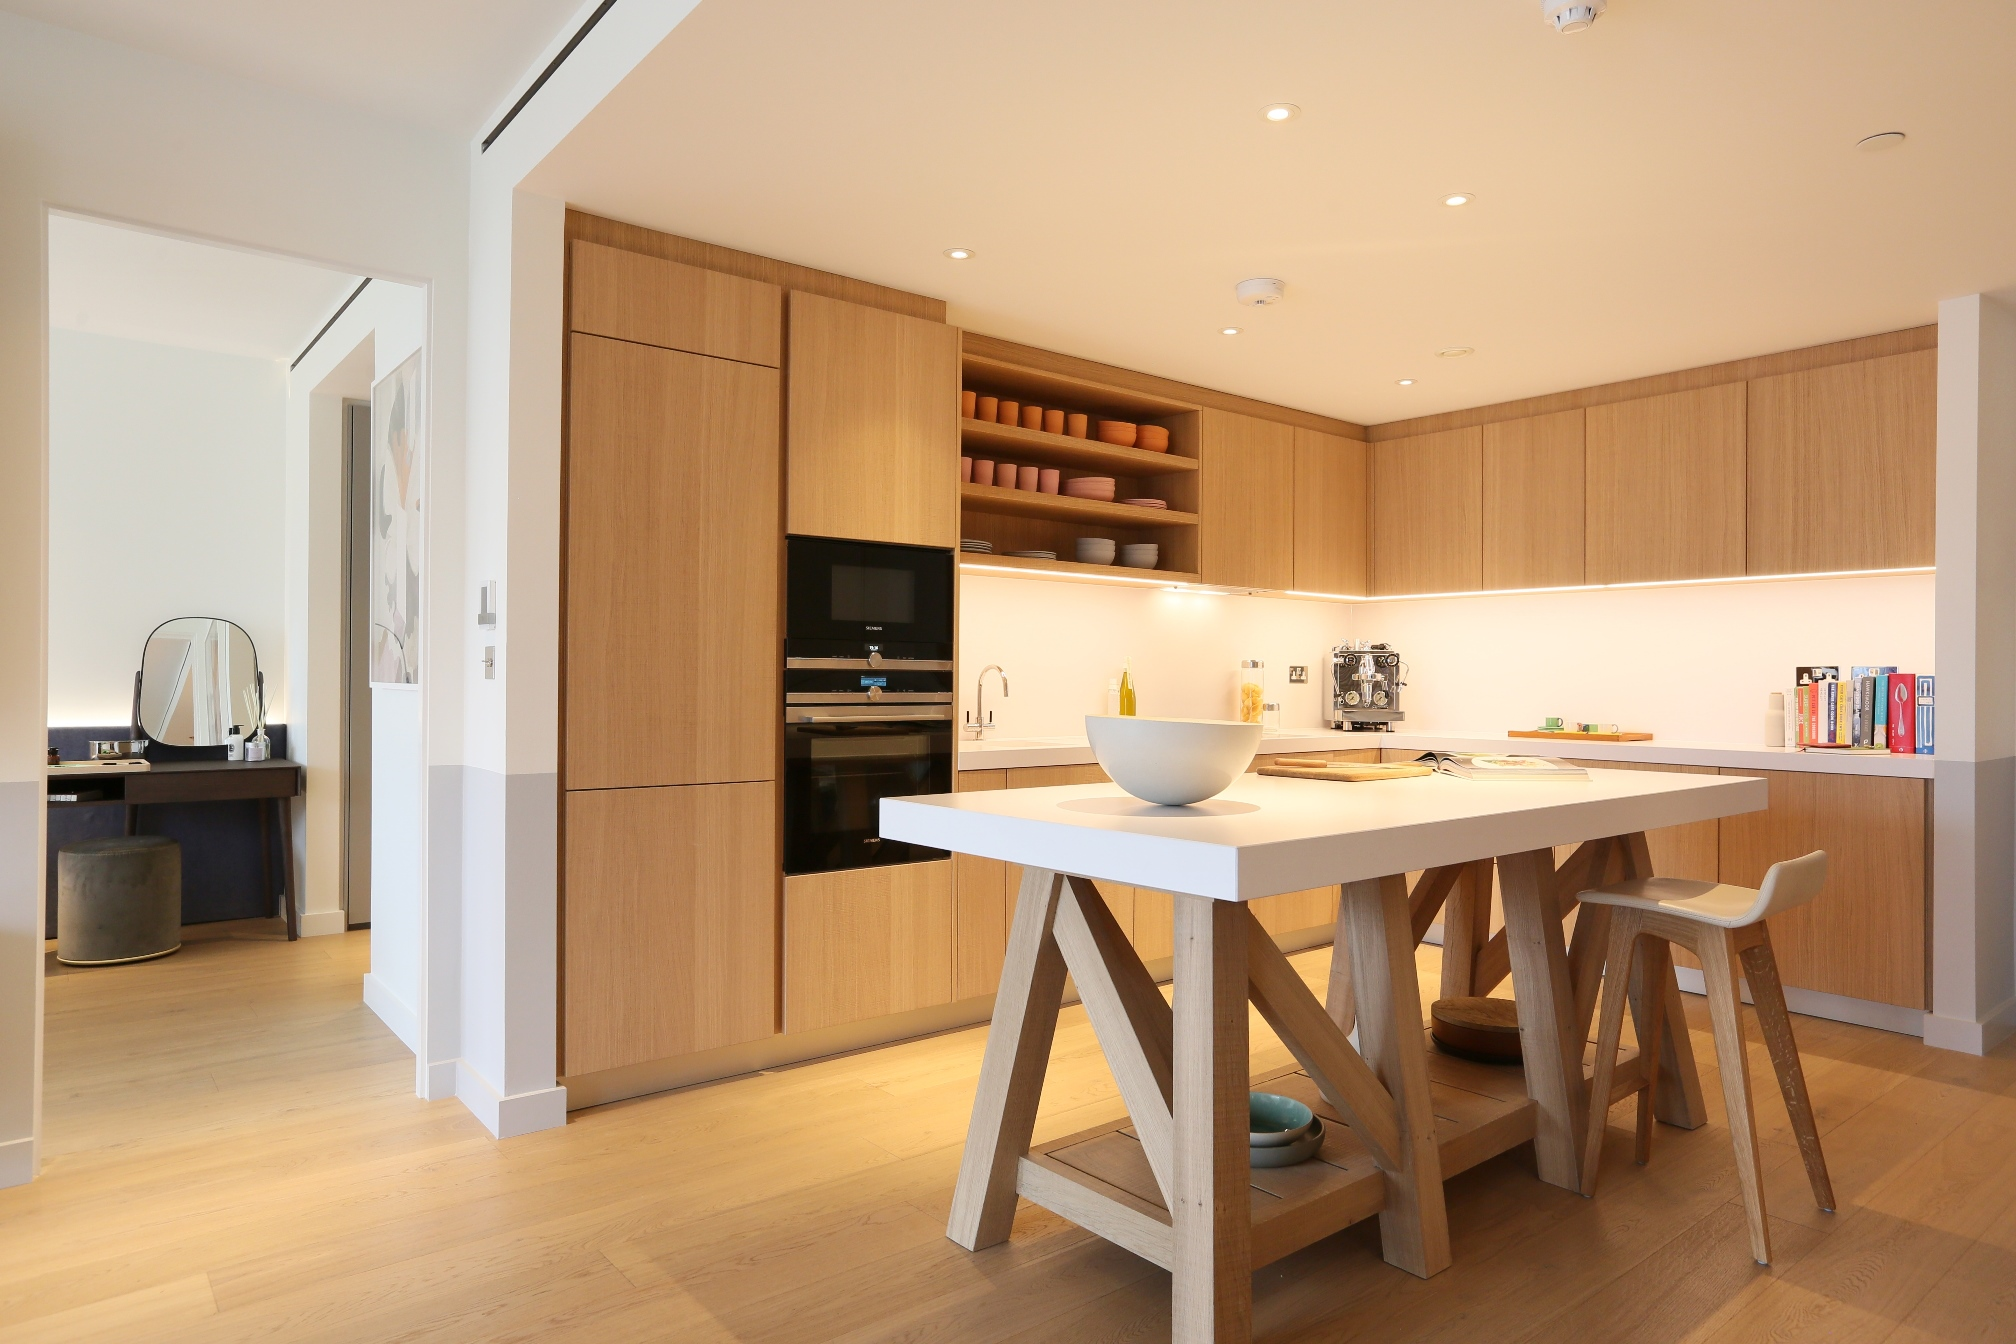 Gehry show apartment kitchen at Battersea Power Station